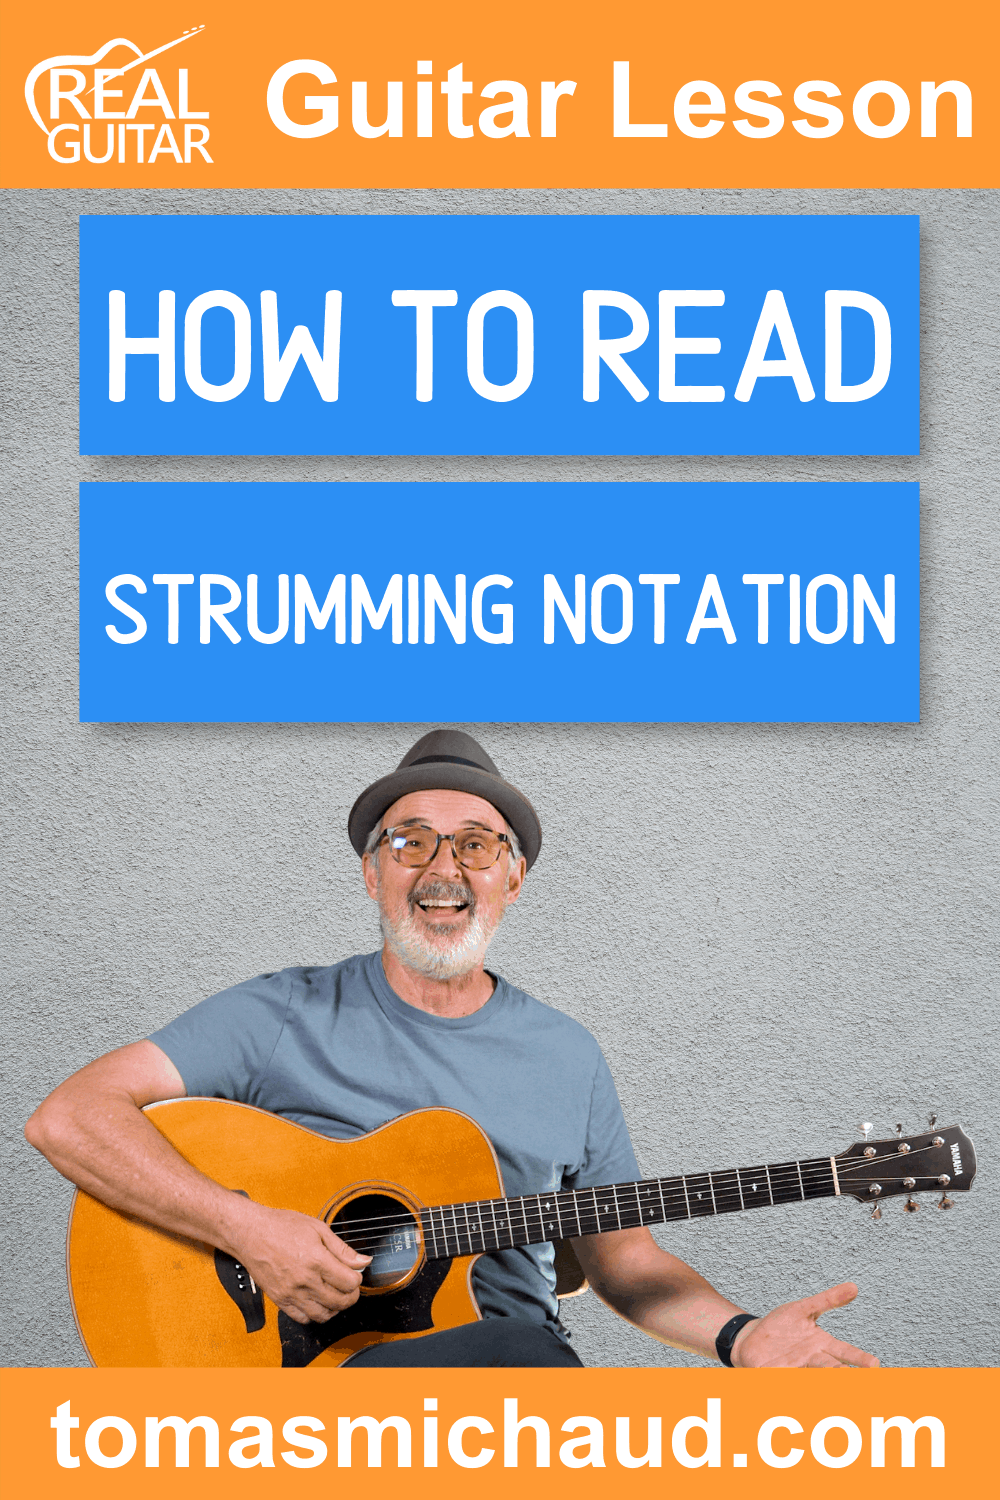 How To Read Strumming Notation